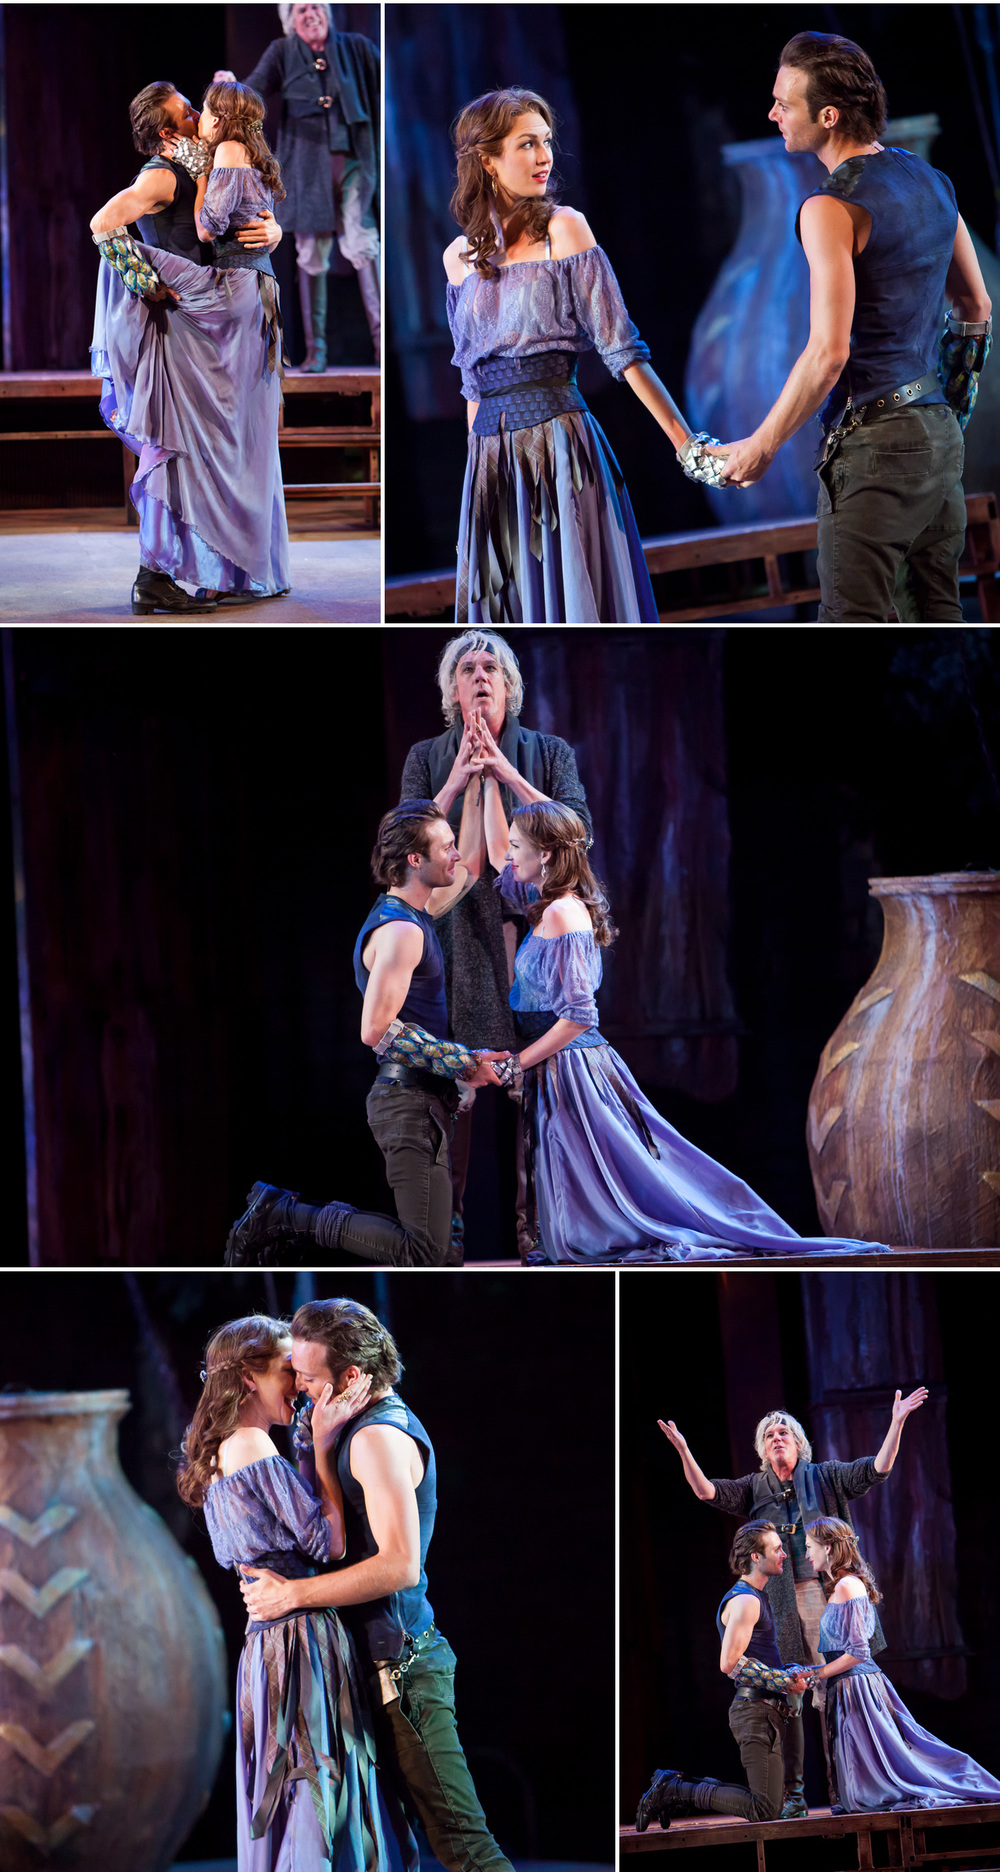 Live theatrical stage production photography of Colorado Shakespeare Festival by Denver photographer Jennifer Koskinen